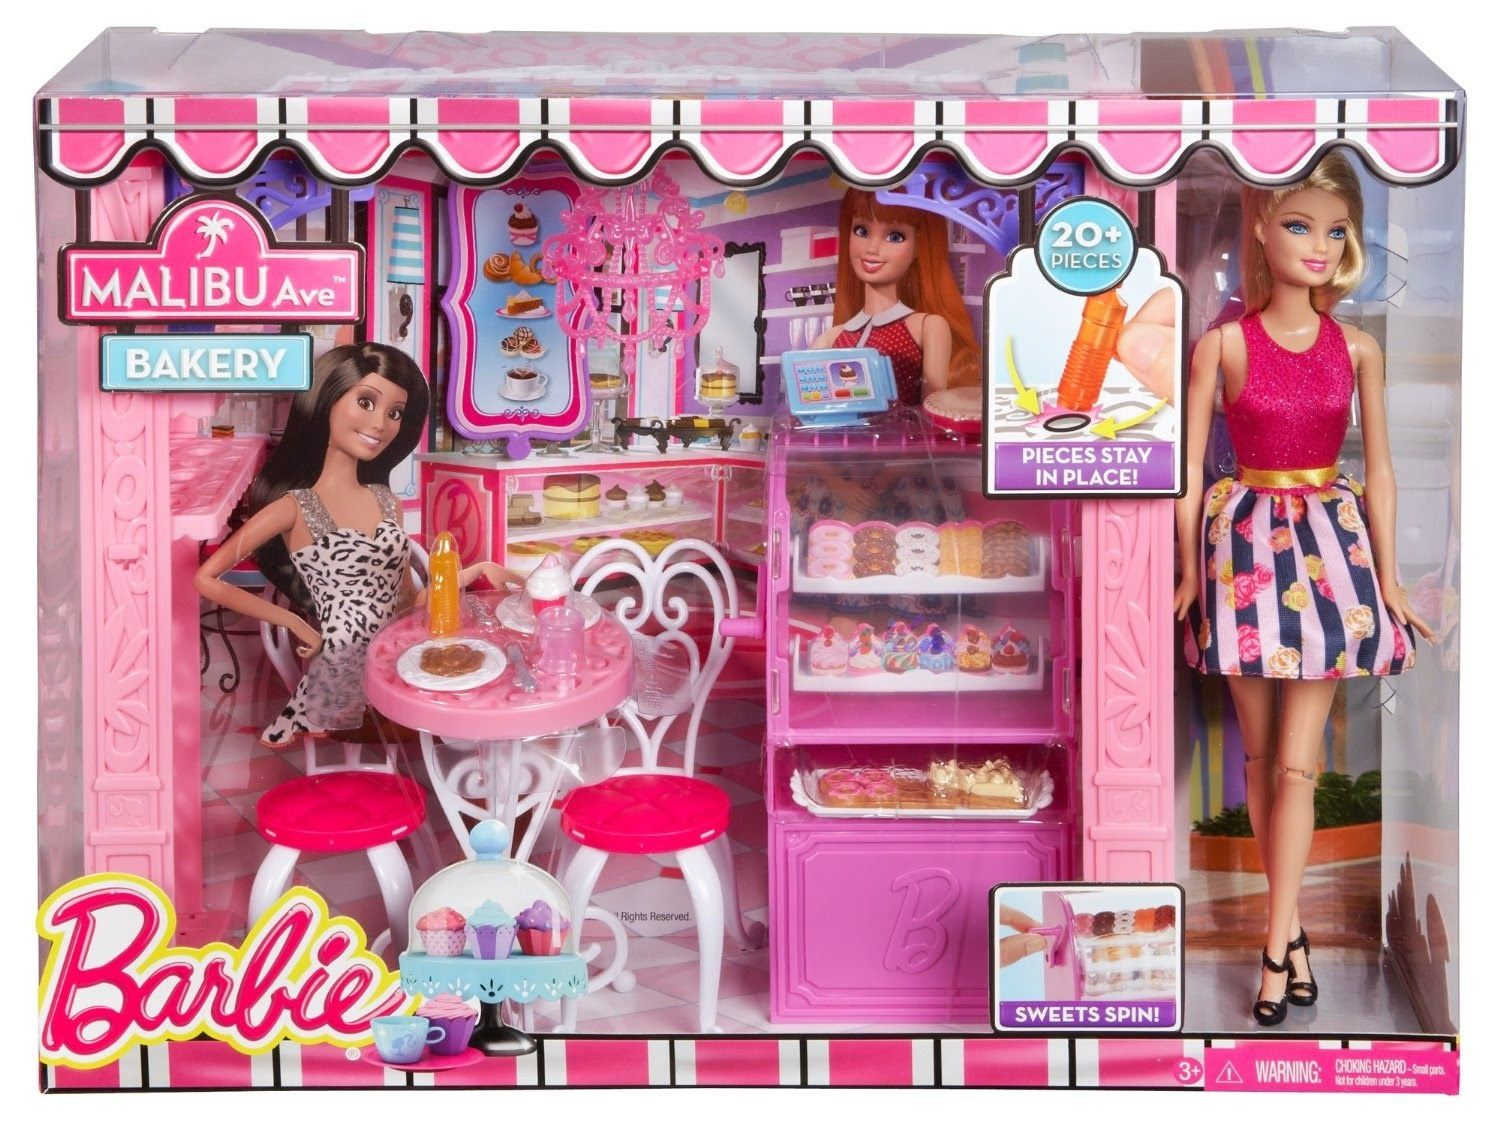 Barbie deluxe furniture stovetop to tabletop kitchen doll target - Barbie Life In The Dreamhouse Cafe And Doll Playset